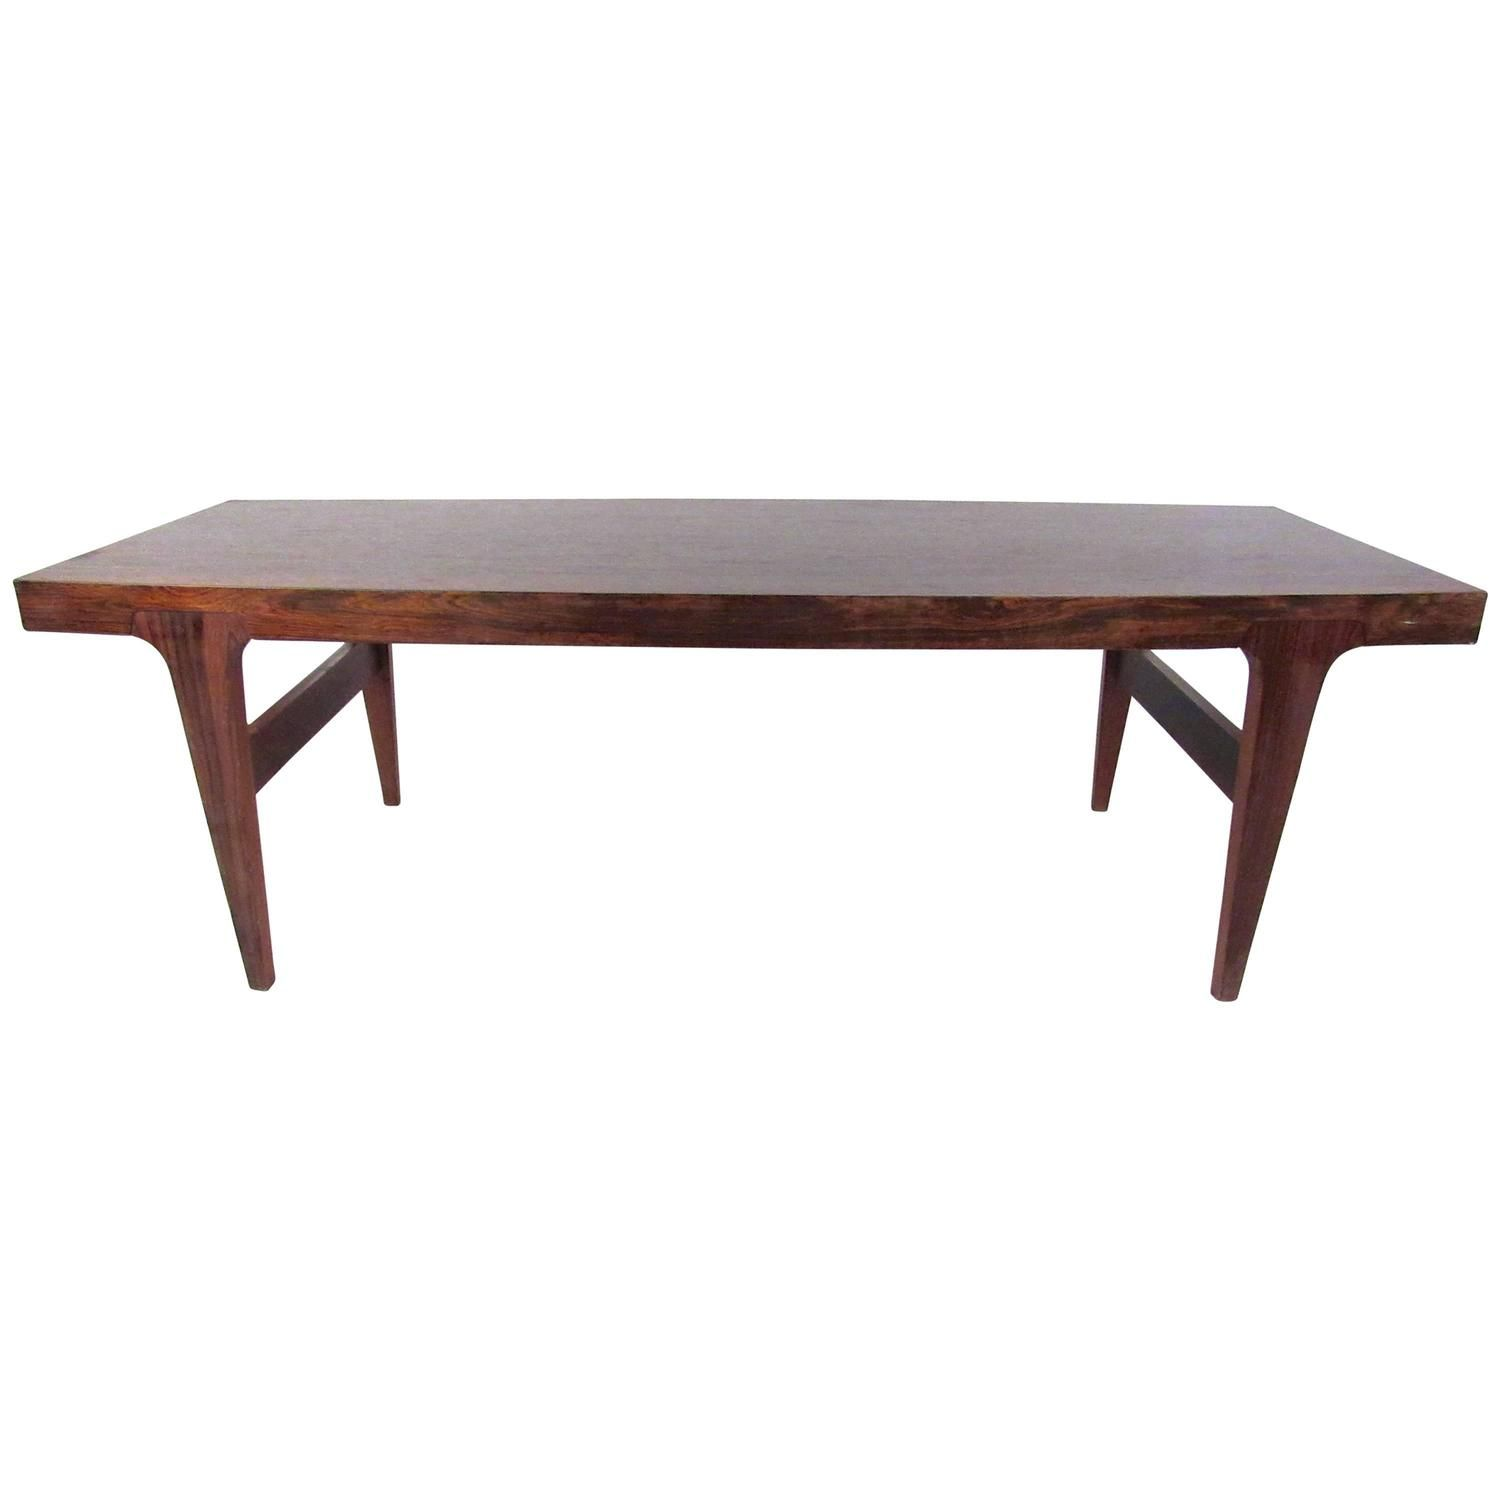 Horseman Antiques Inc Danish Modern Rosewood Coffee Table W63 D26 H20 1000 Coffee Table Table Mid Century Modern Furniture [ 1500 x 1500 Pixel ]